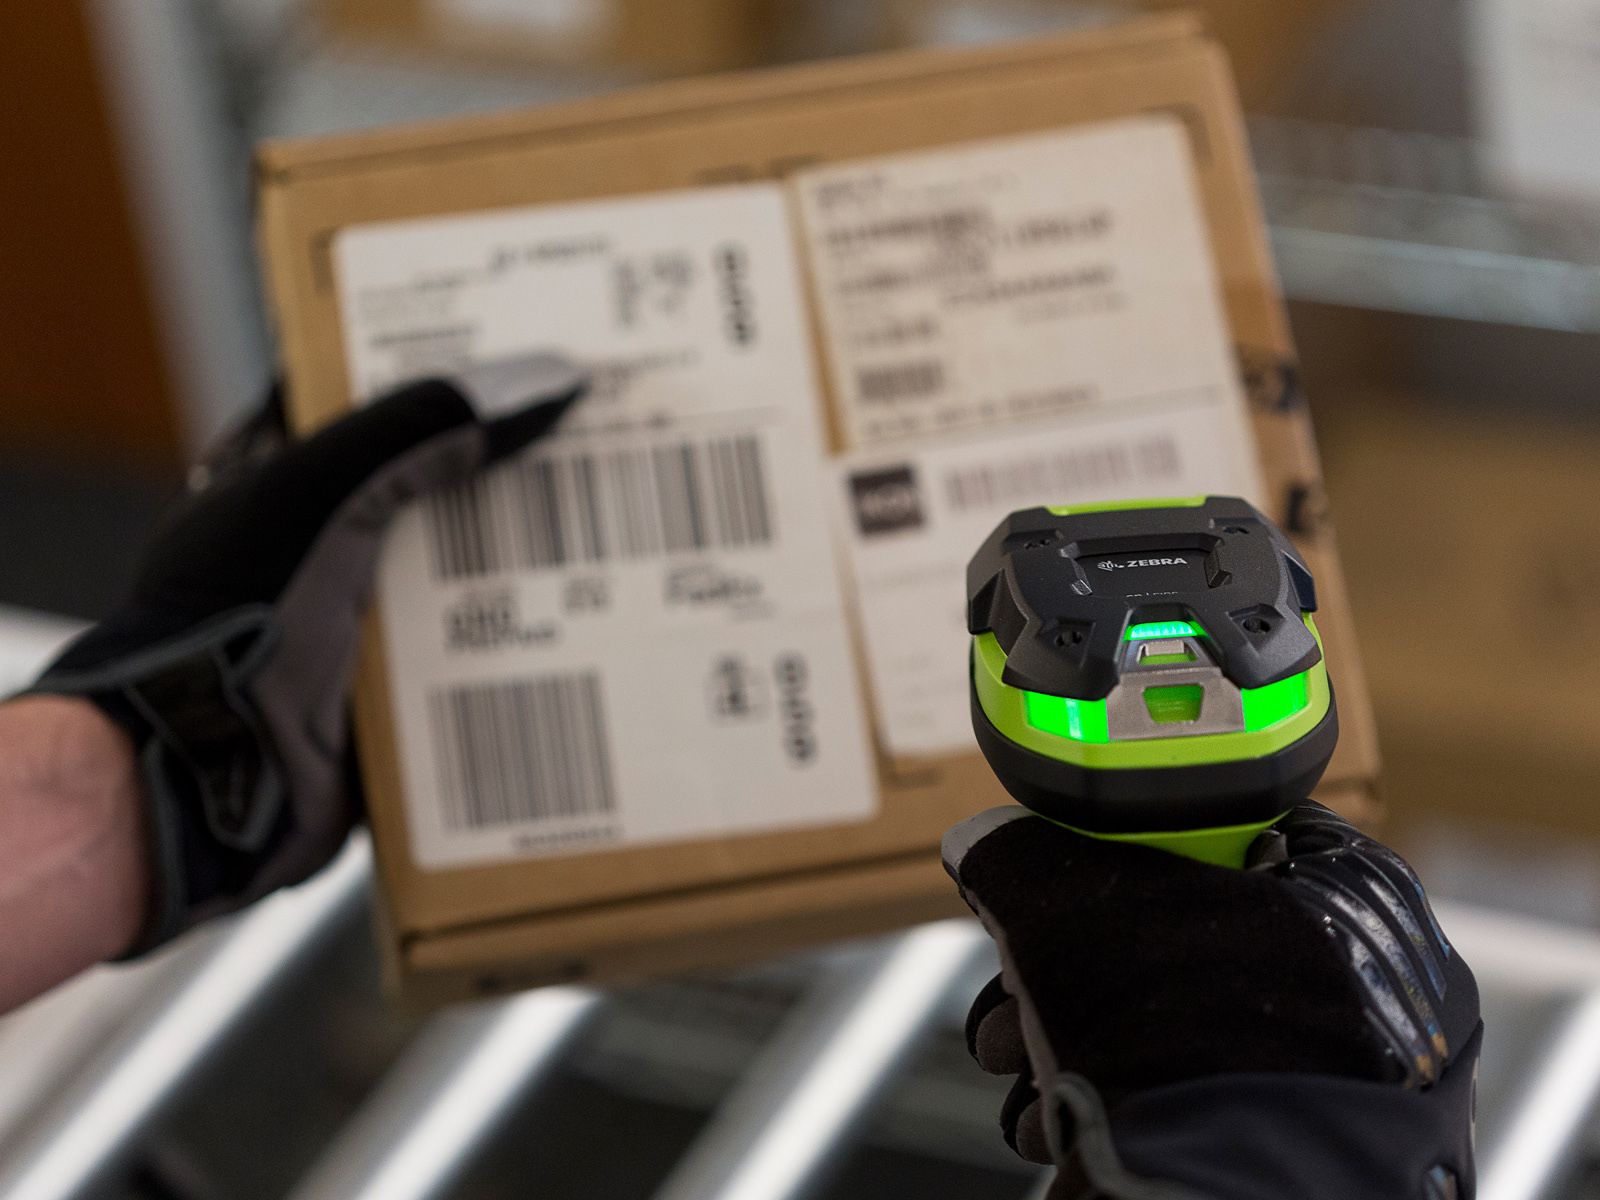 A 3600 scanner being used by a glove-wearing person to scan a barcode on a box